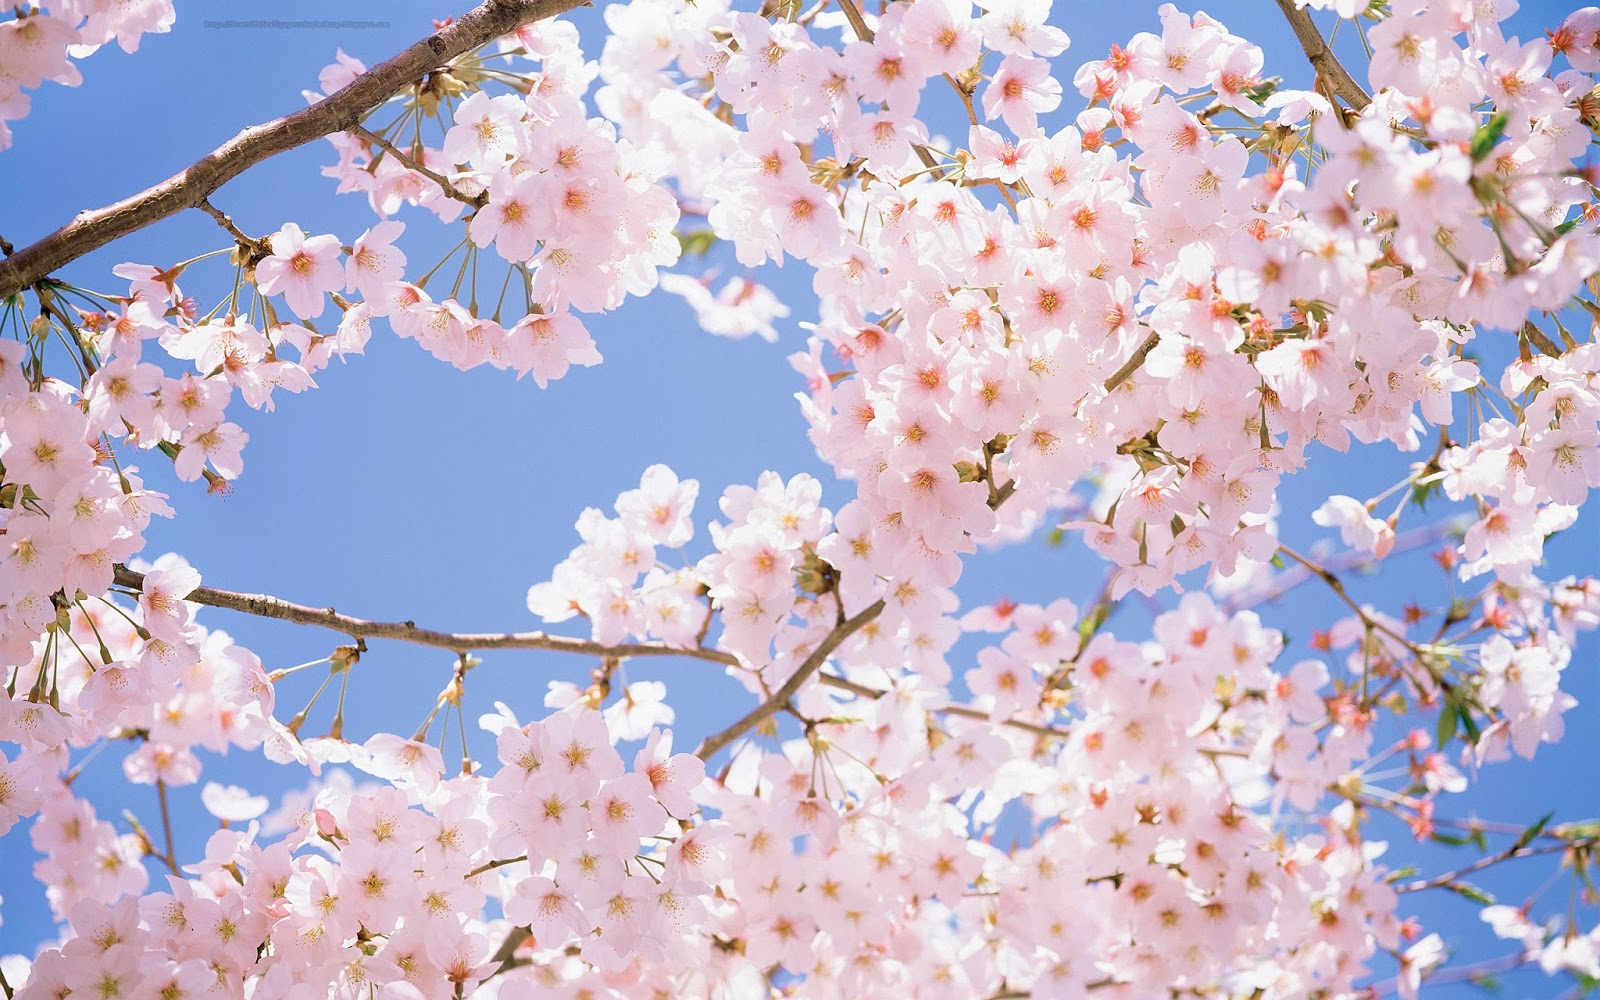 hd cherry blossom backgrounds - photo #5